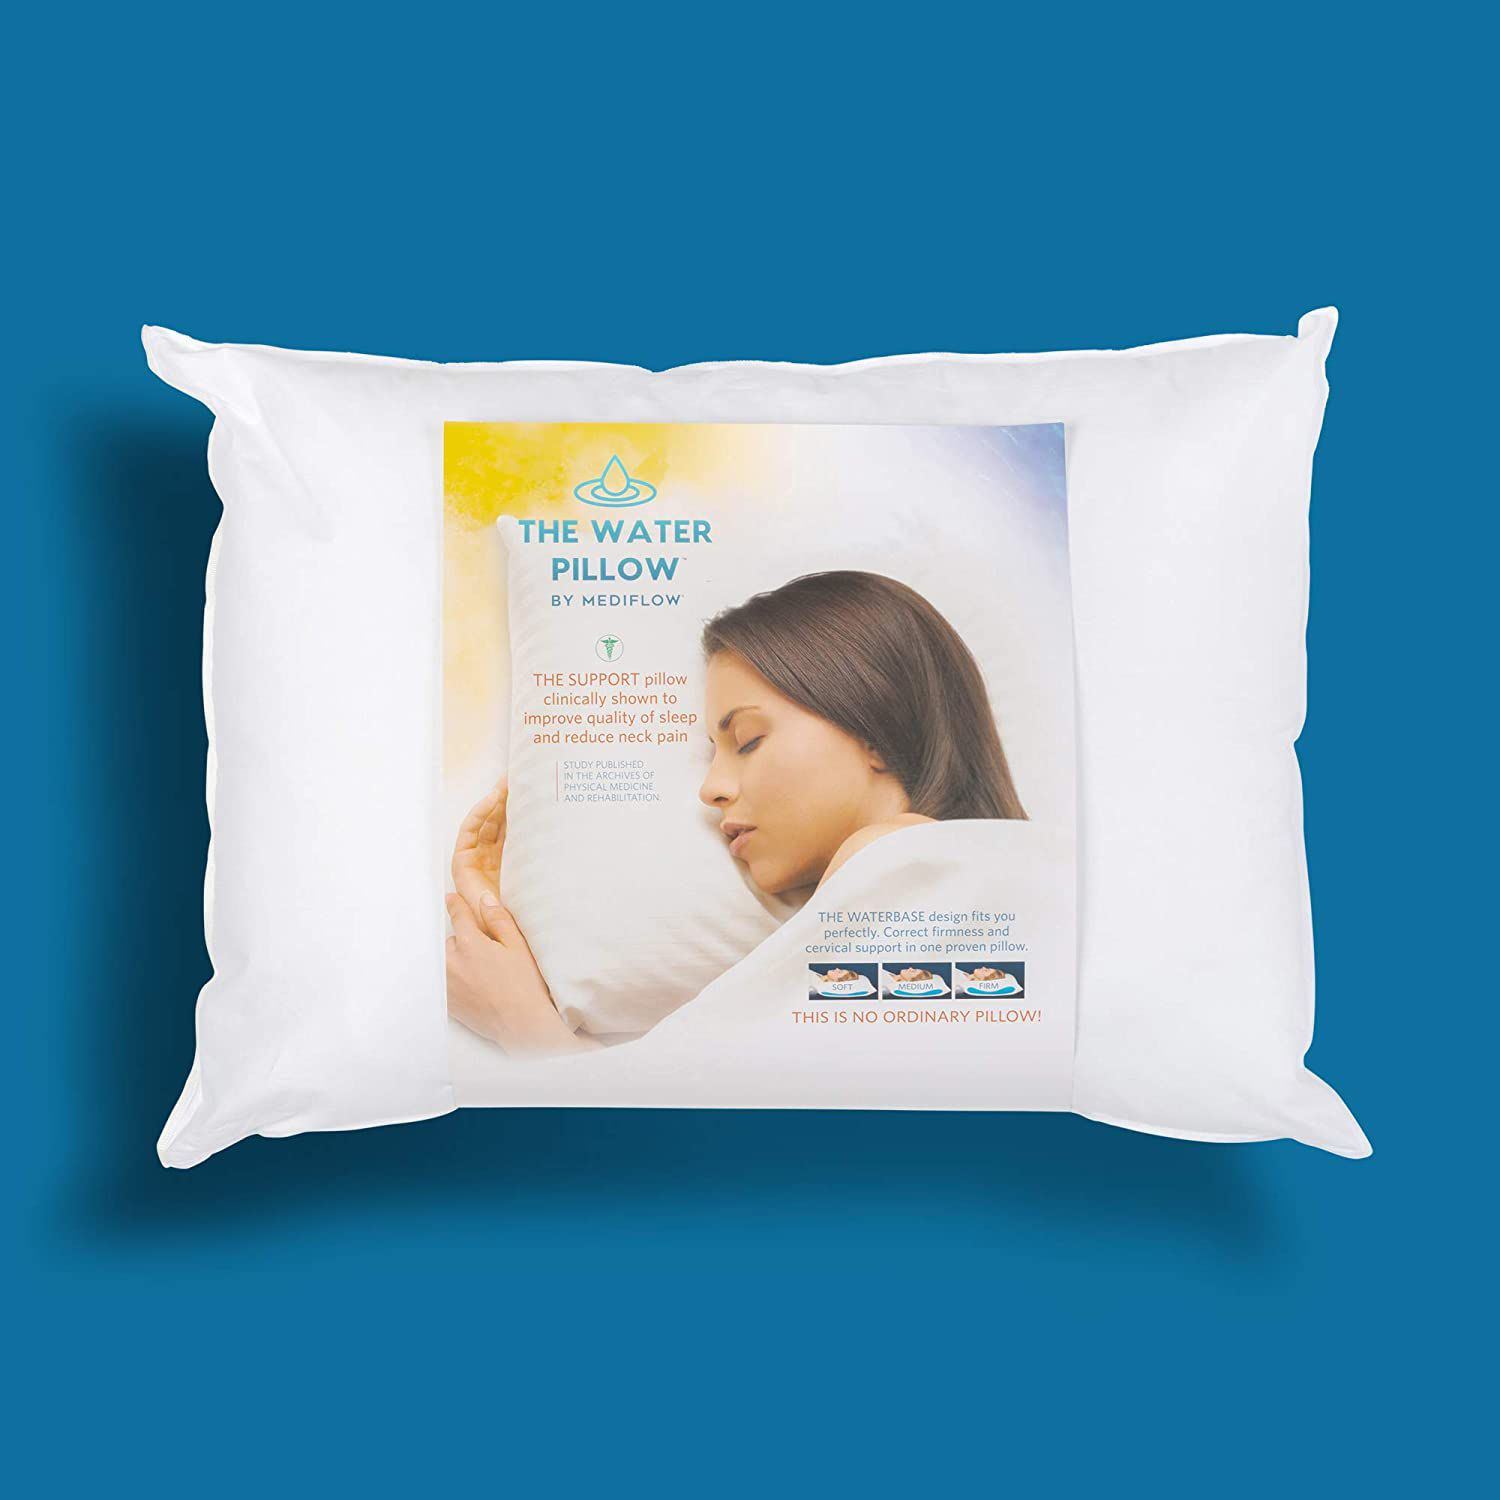 the 12 best pillows for neck pain of 2021